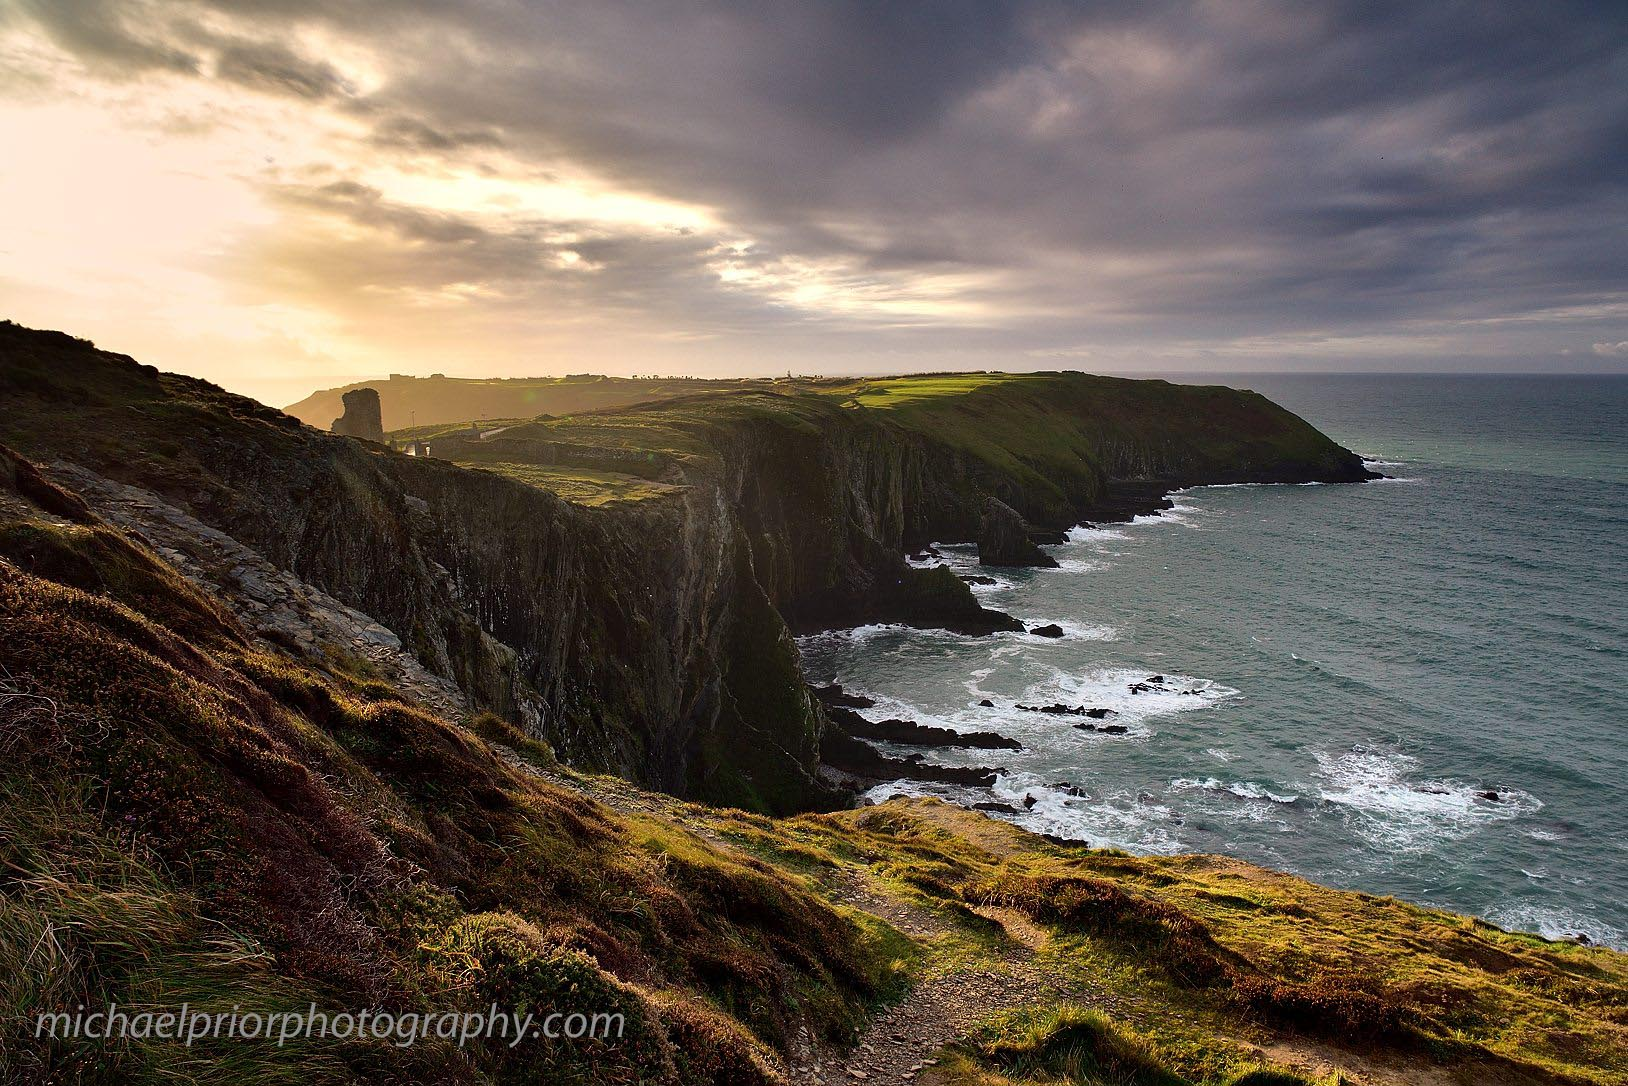 Winter Sunrise At The Oldhead Of Kinsale